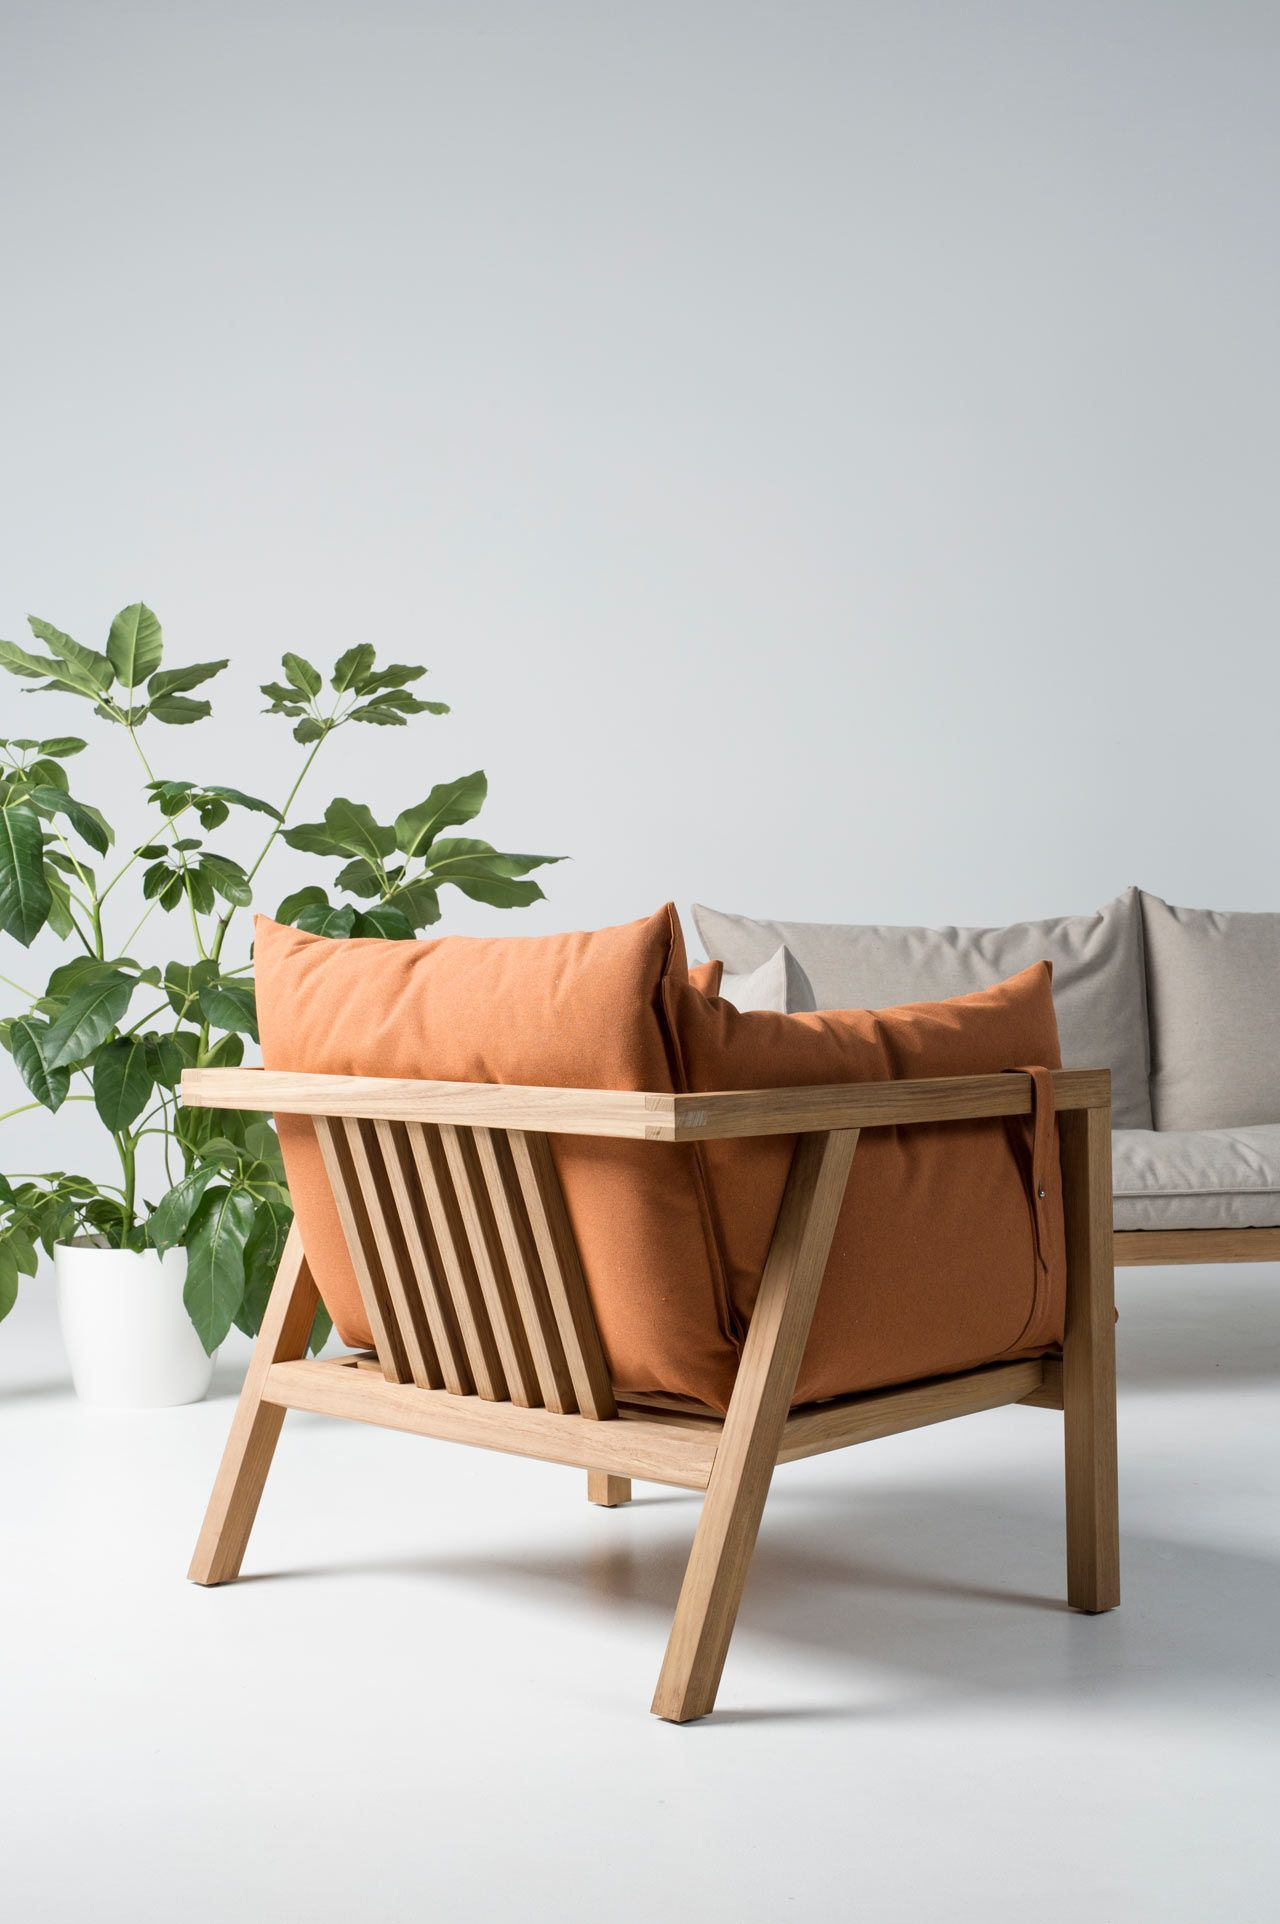 Brilliant furniture design ideas with wood pallets 13